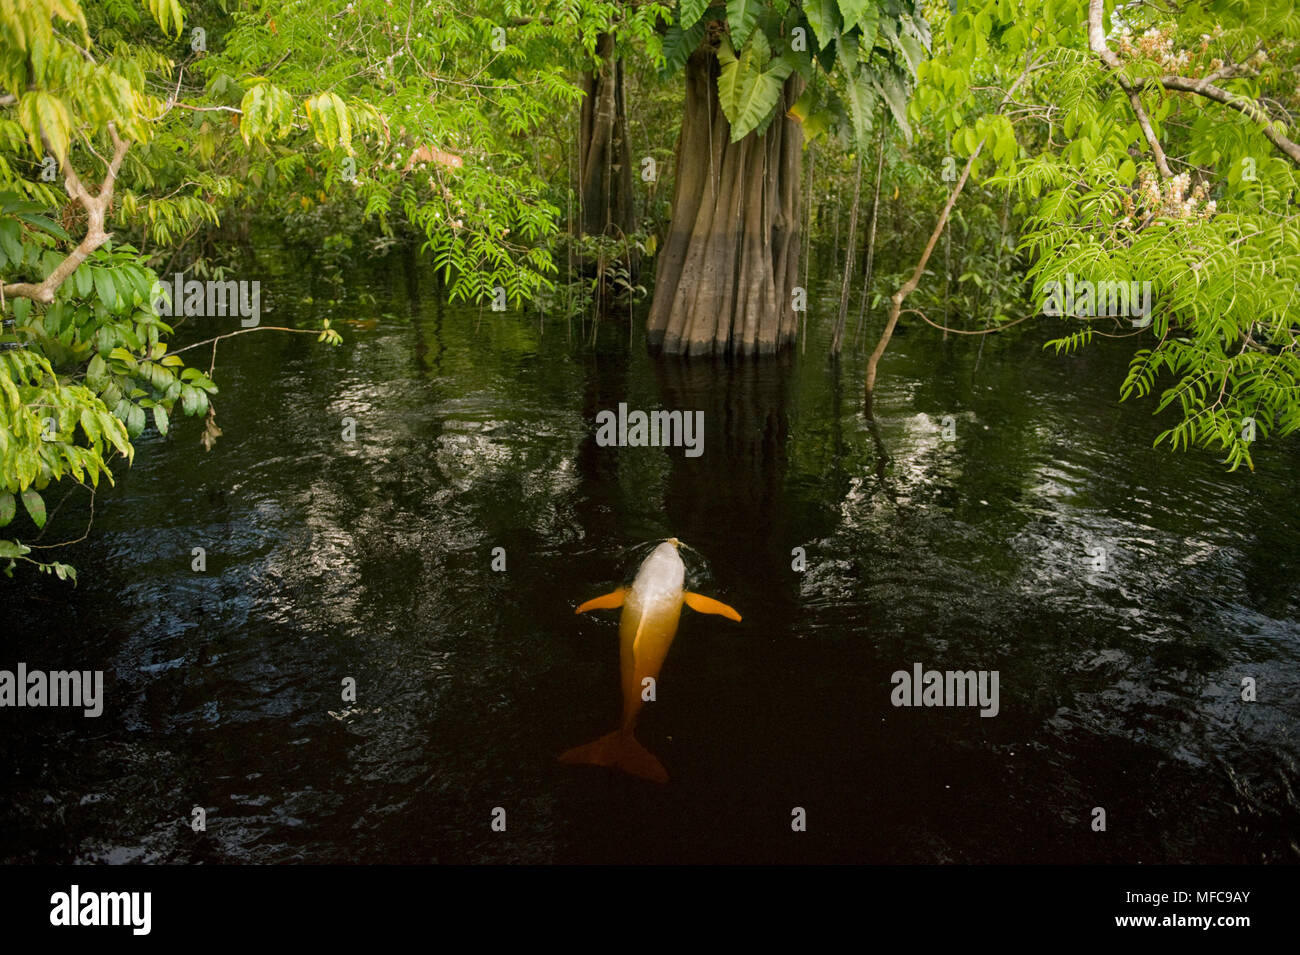 Amazon River Dolphin or Boto (Inia geoffrensis) In flooded forest,  Rio Negro, Amazonia, Brazil - Stock Image